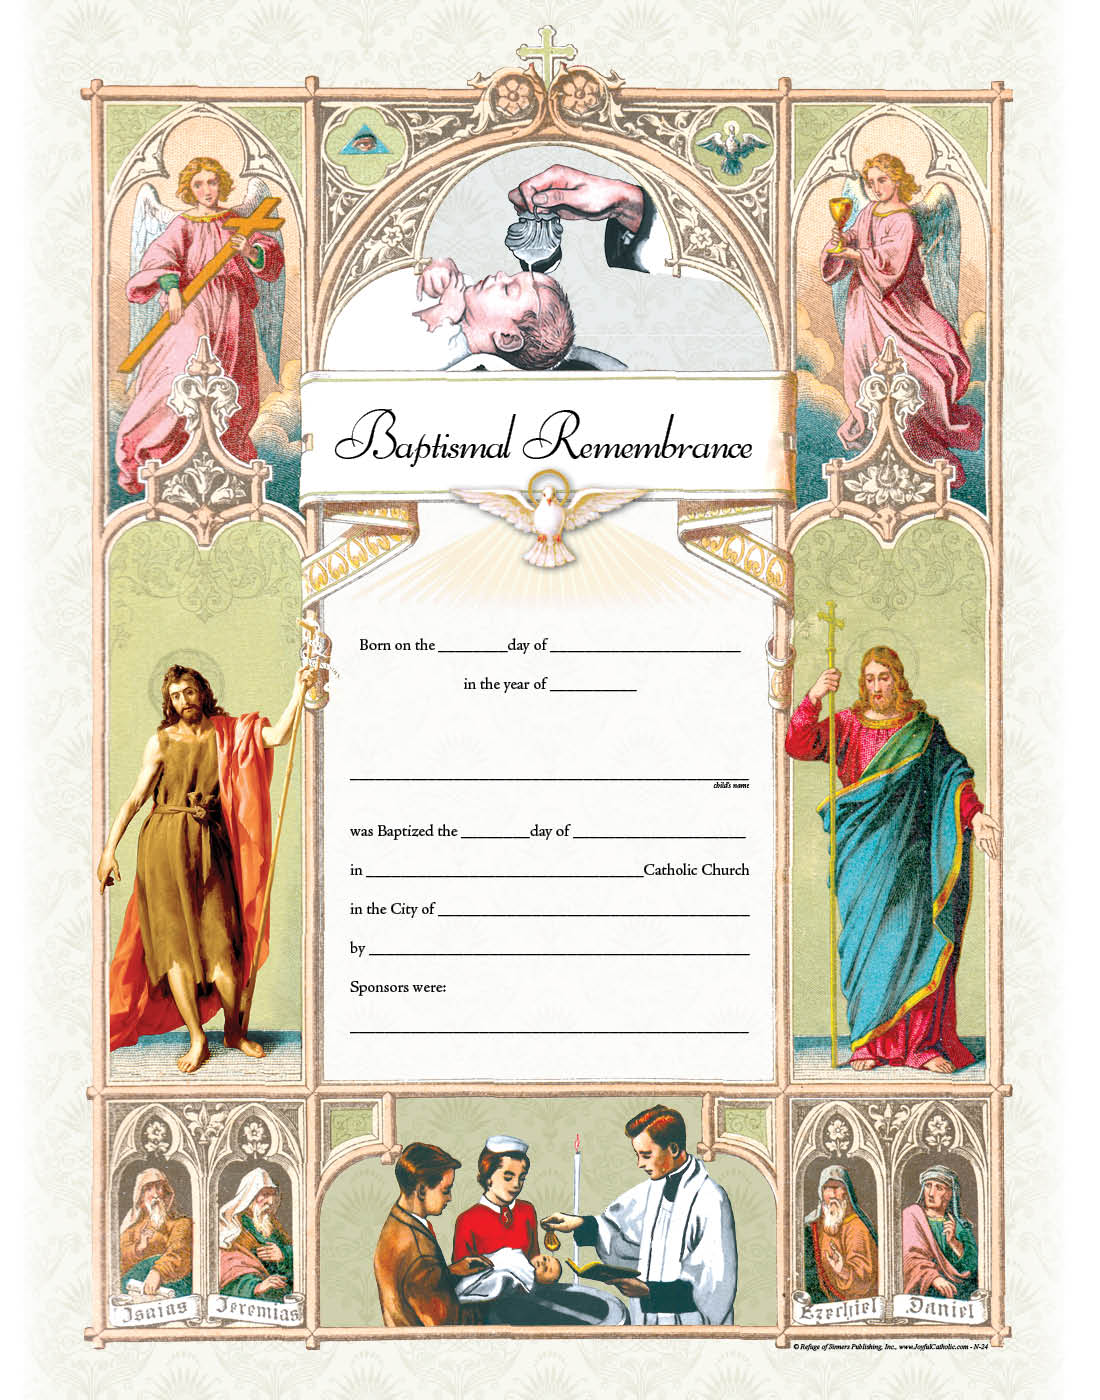 Baptismal Remembrance Certificate Gt Framed Pictures